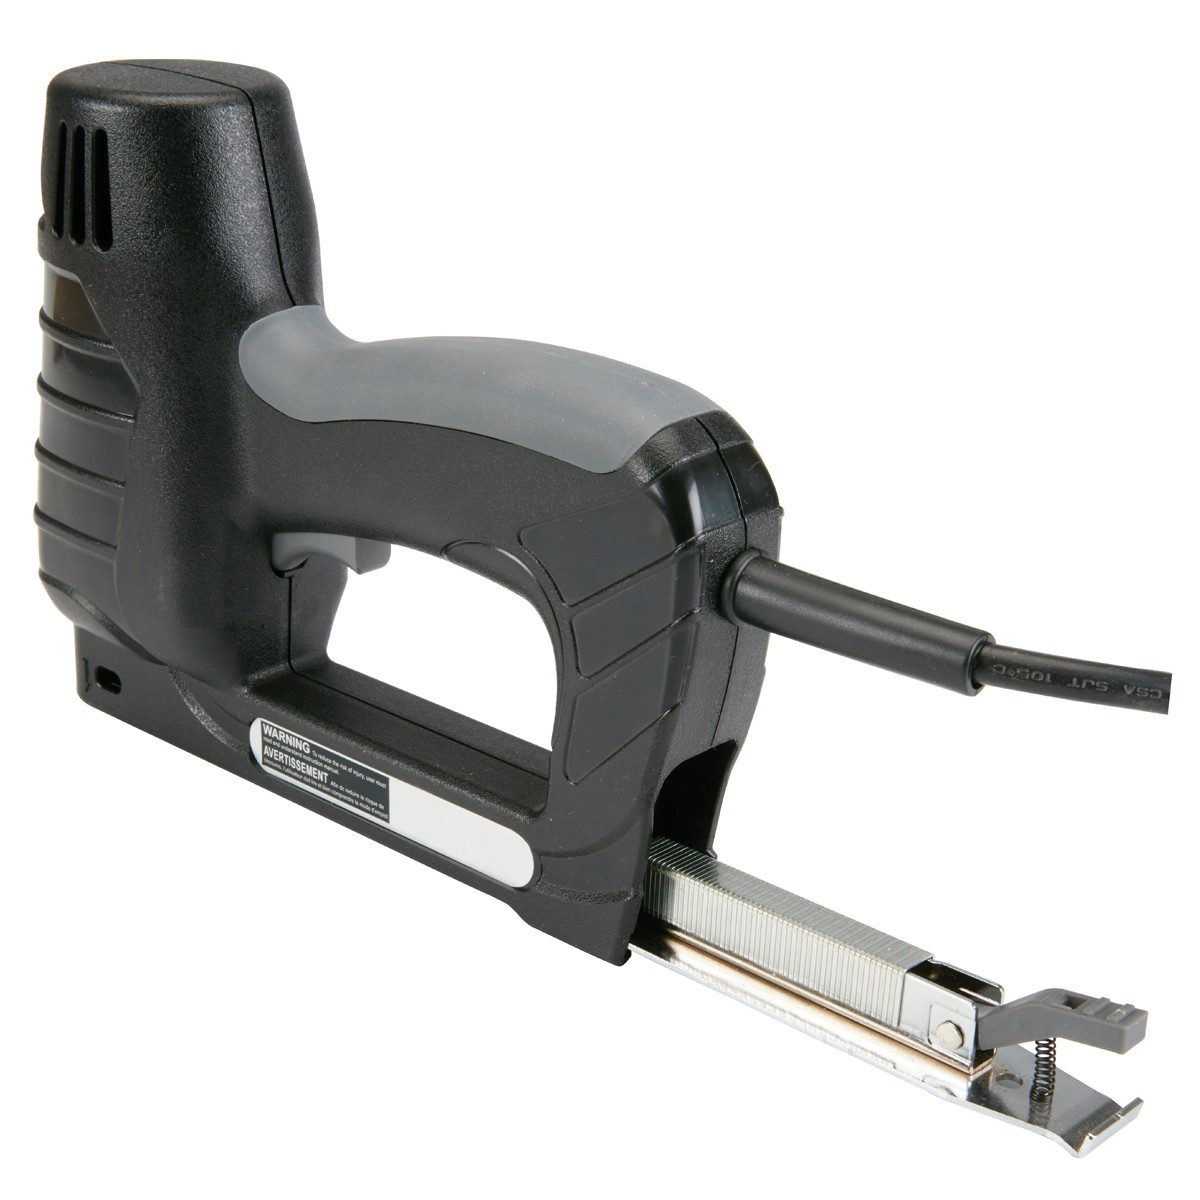 2-In-1 Stapler/Brad Nailer